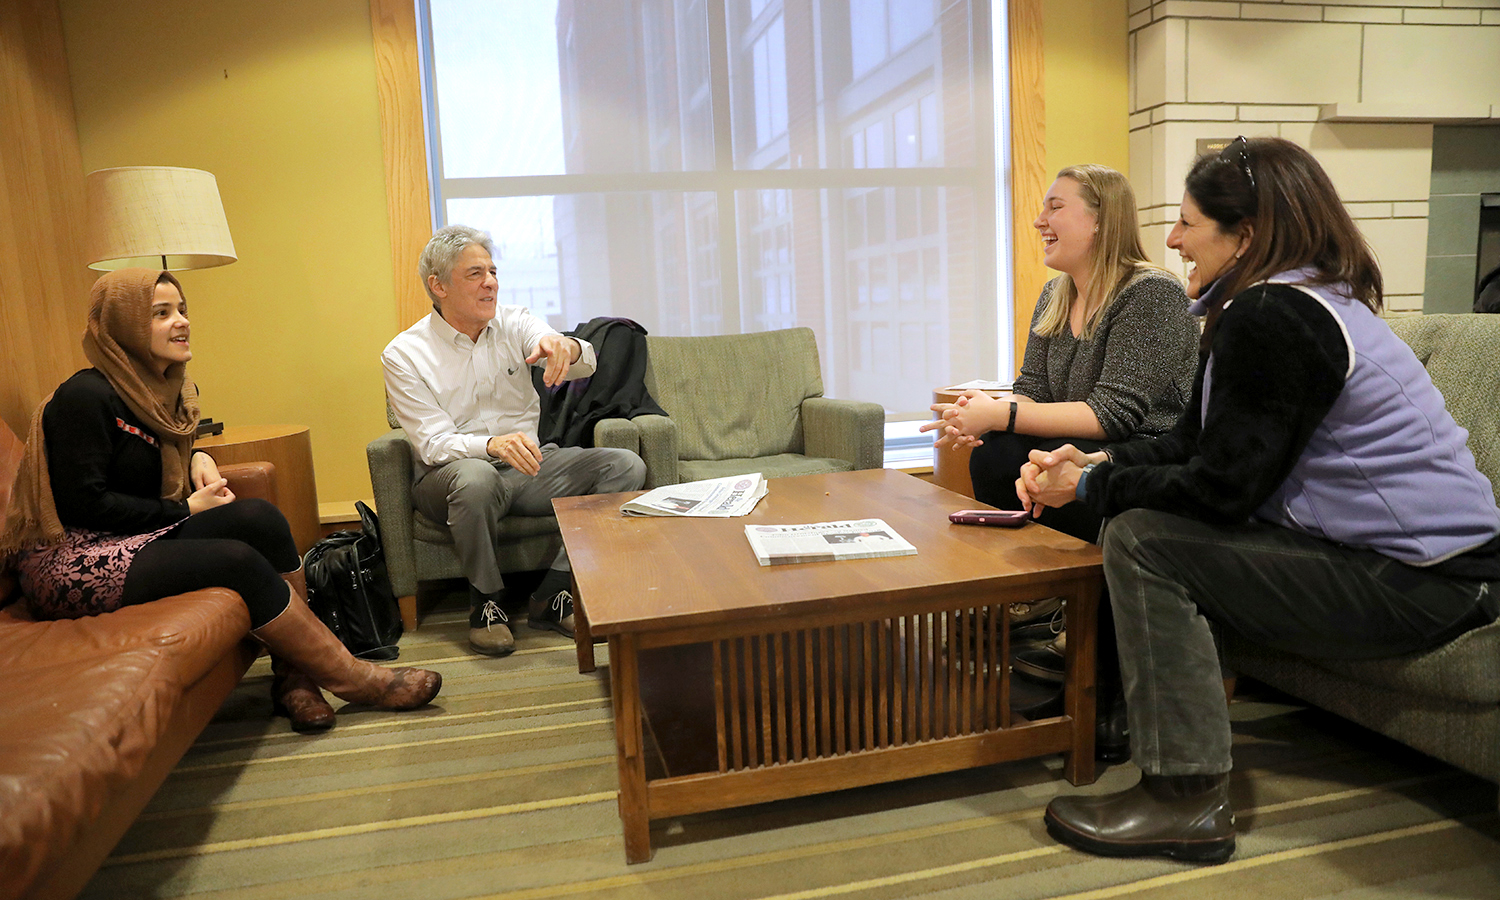 Zahra Arabzada '19, HWS Trustee Stephen Cohen '67, Taylor Gorycki '18 and Associate Dean for Teaching, Learning, and Assessment & Director of the Center for Teaching and Learning Susan Pliner talk about X in Scanding Campus Center.